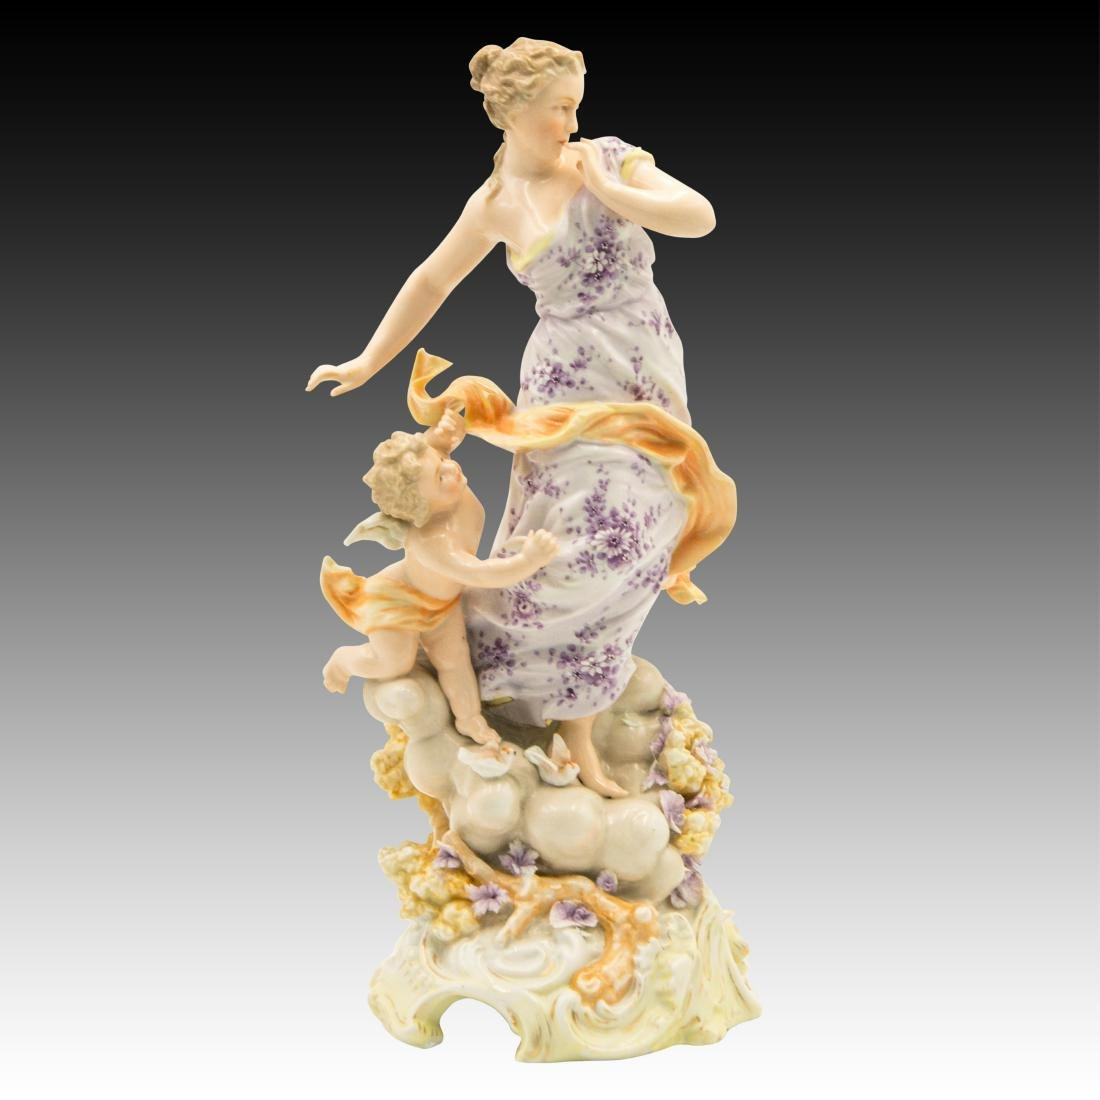 Young Woman on a Cloud with a Cherub Figurine